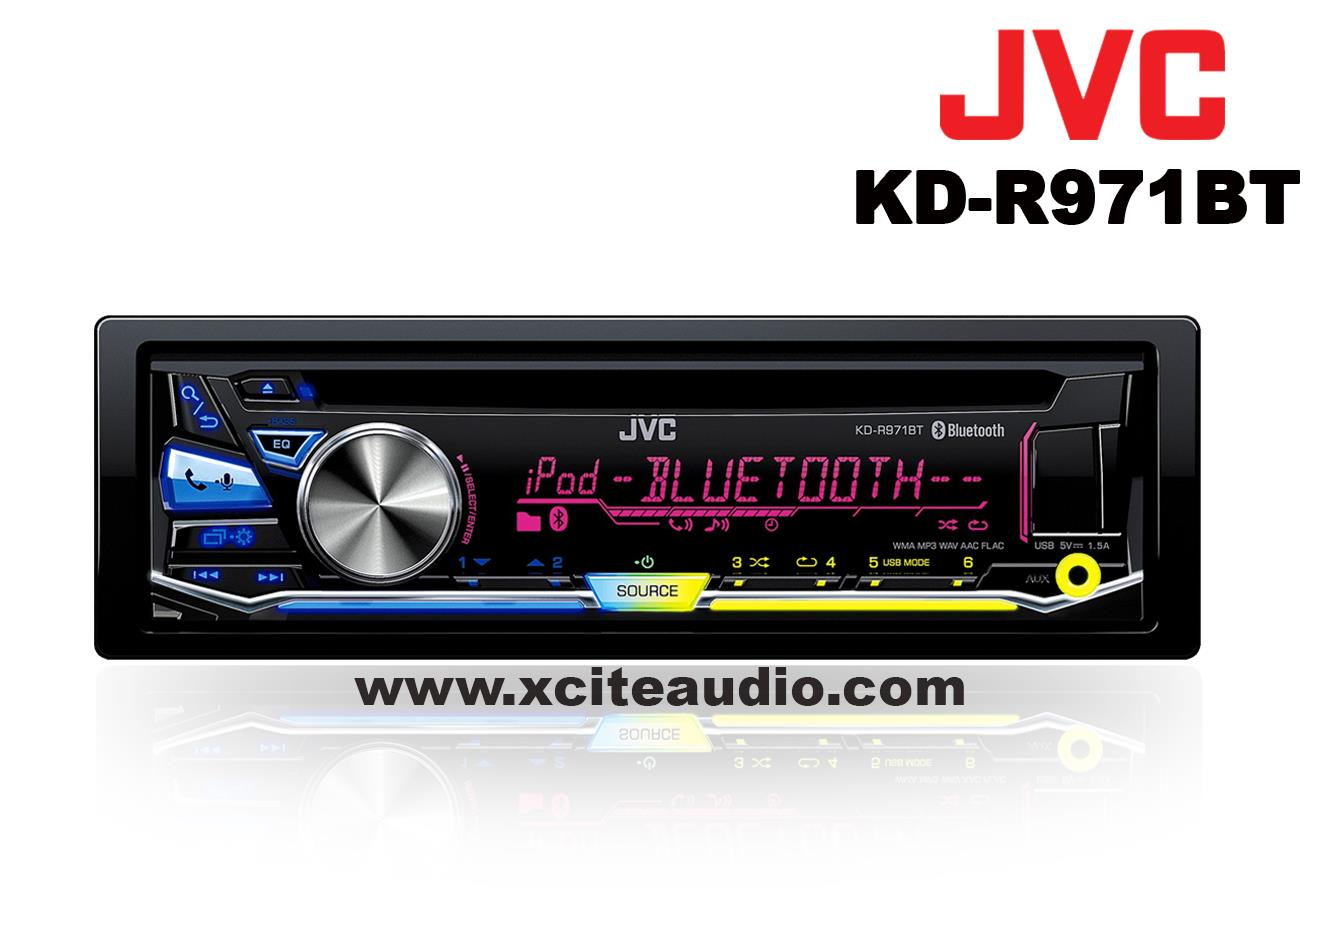 JVC KD-R971BT Single Din CD/Bluetooth/Front USB/Aux-in Front CarPlayer